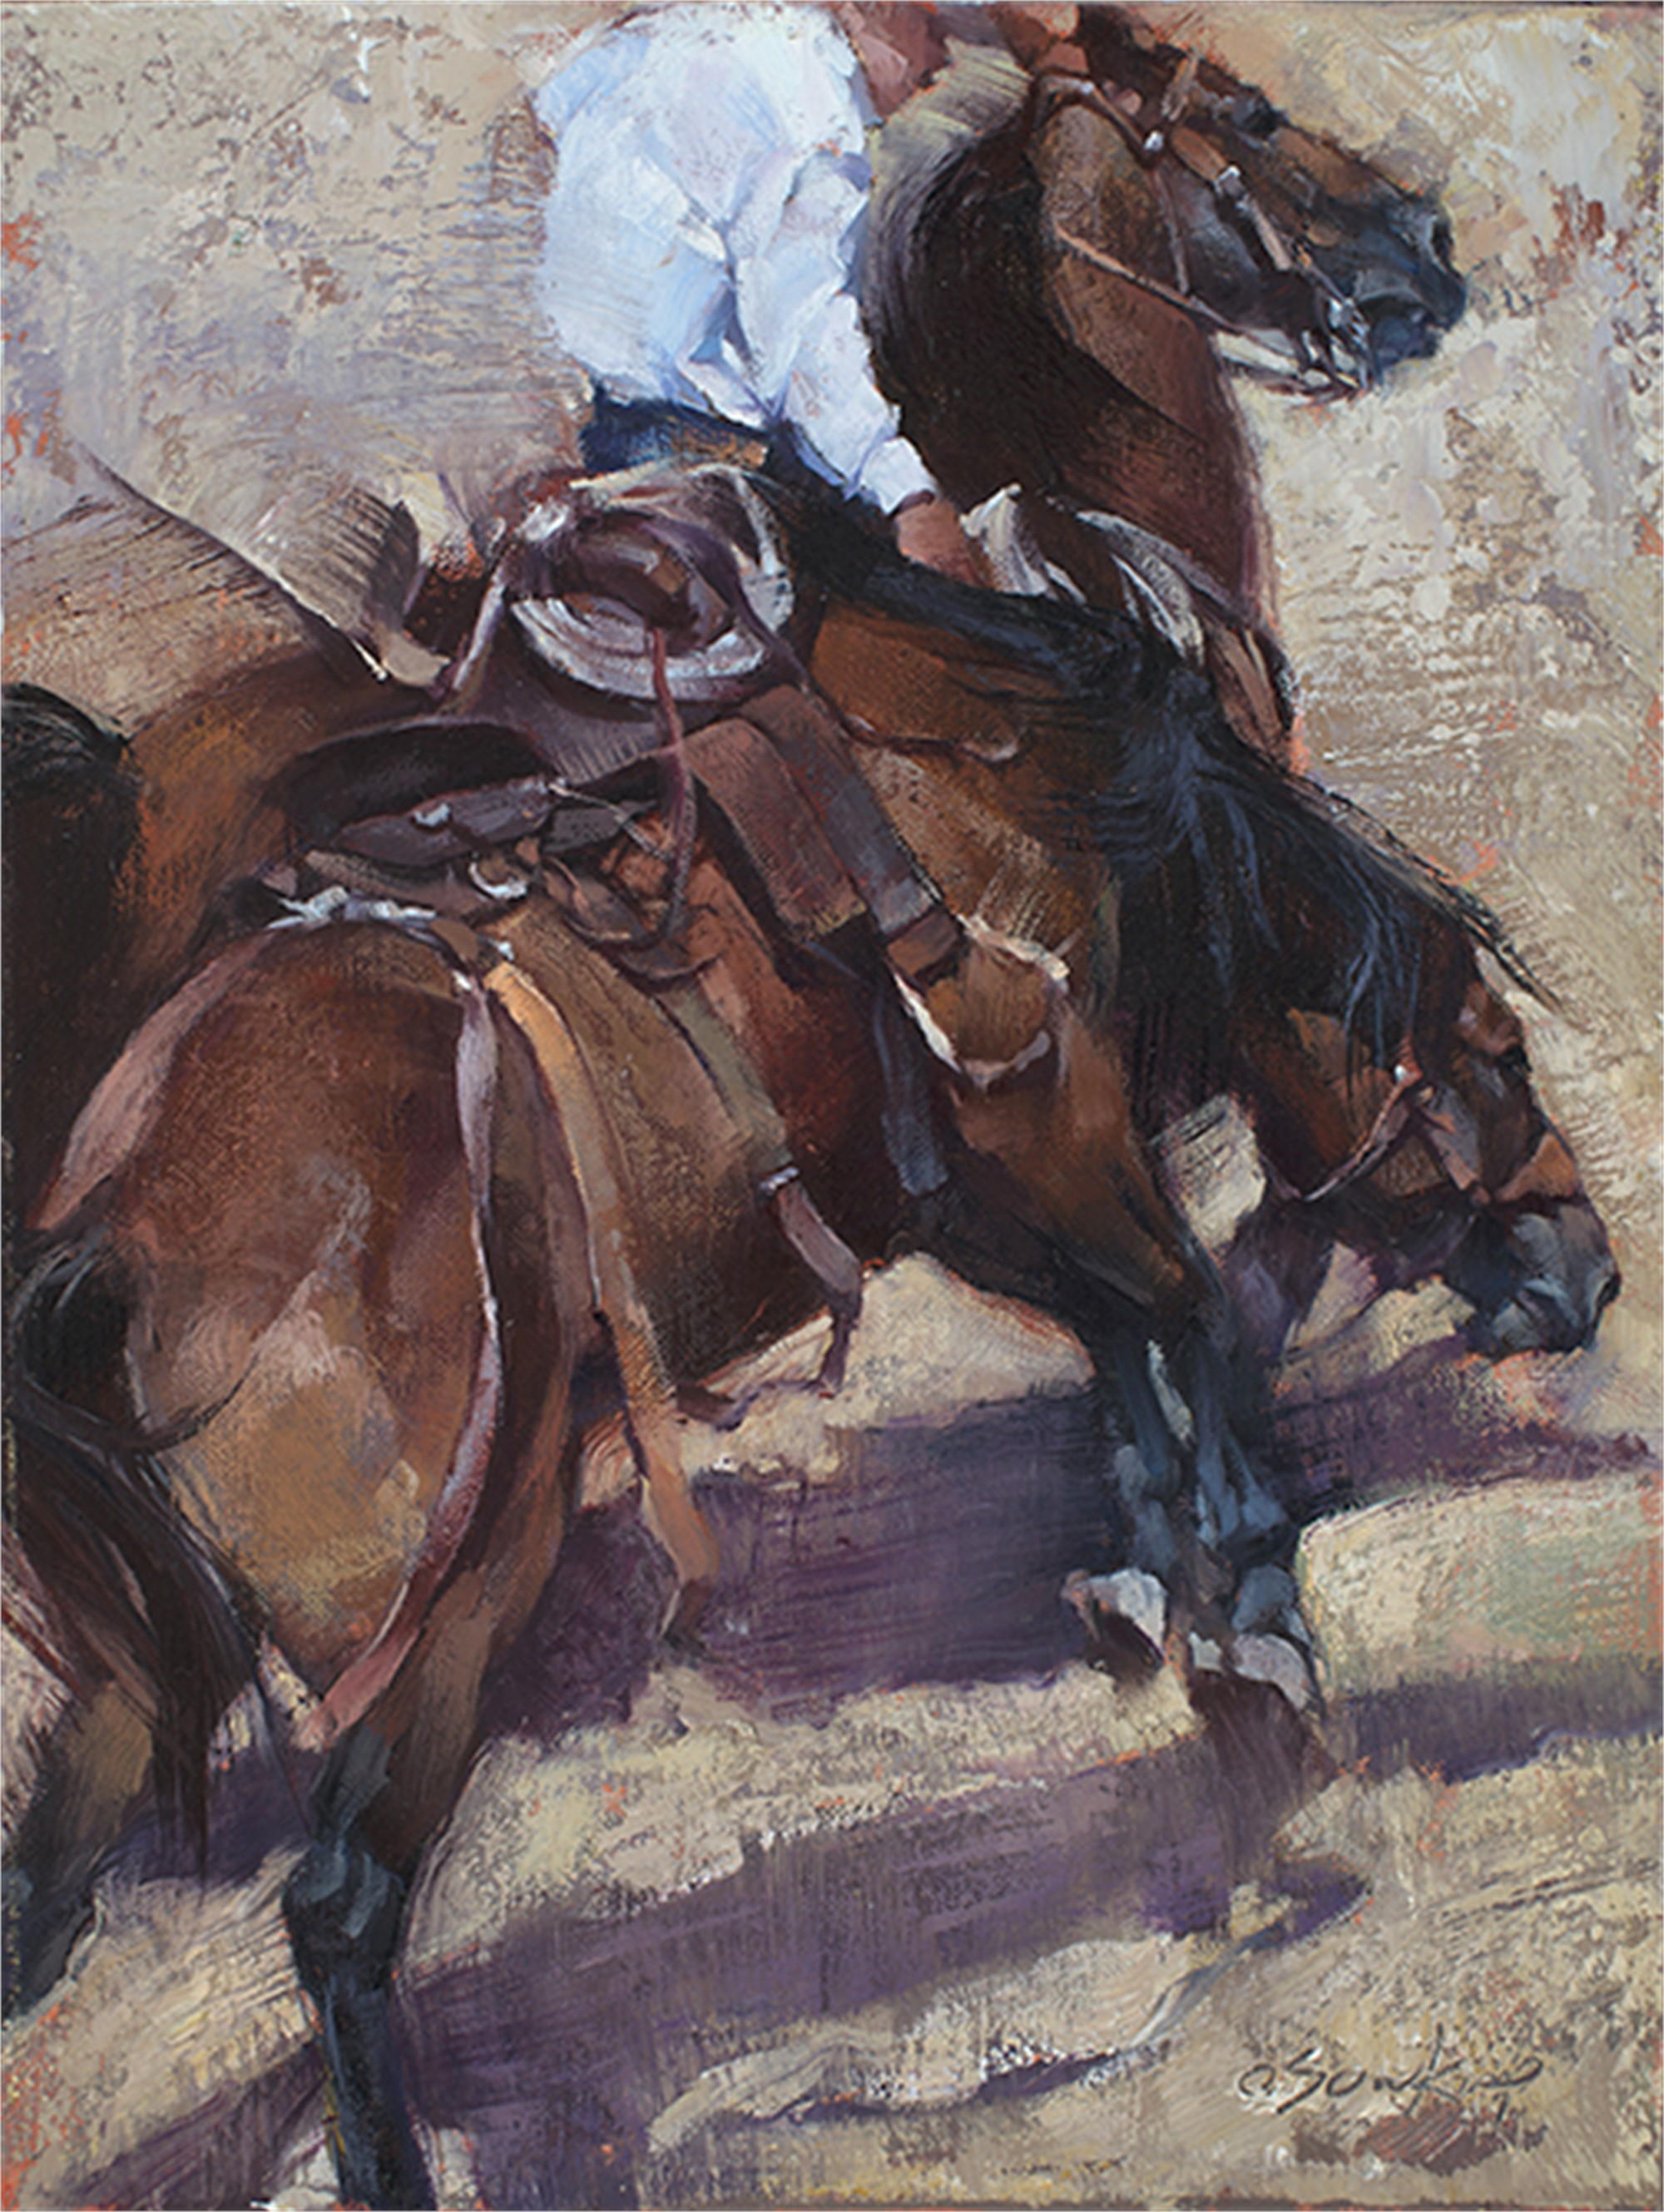 Bucking Bay (Fairgrounds Bronco 1) by Jill Soukup